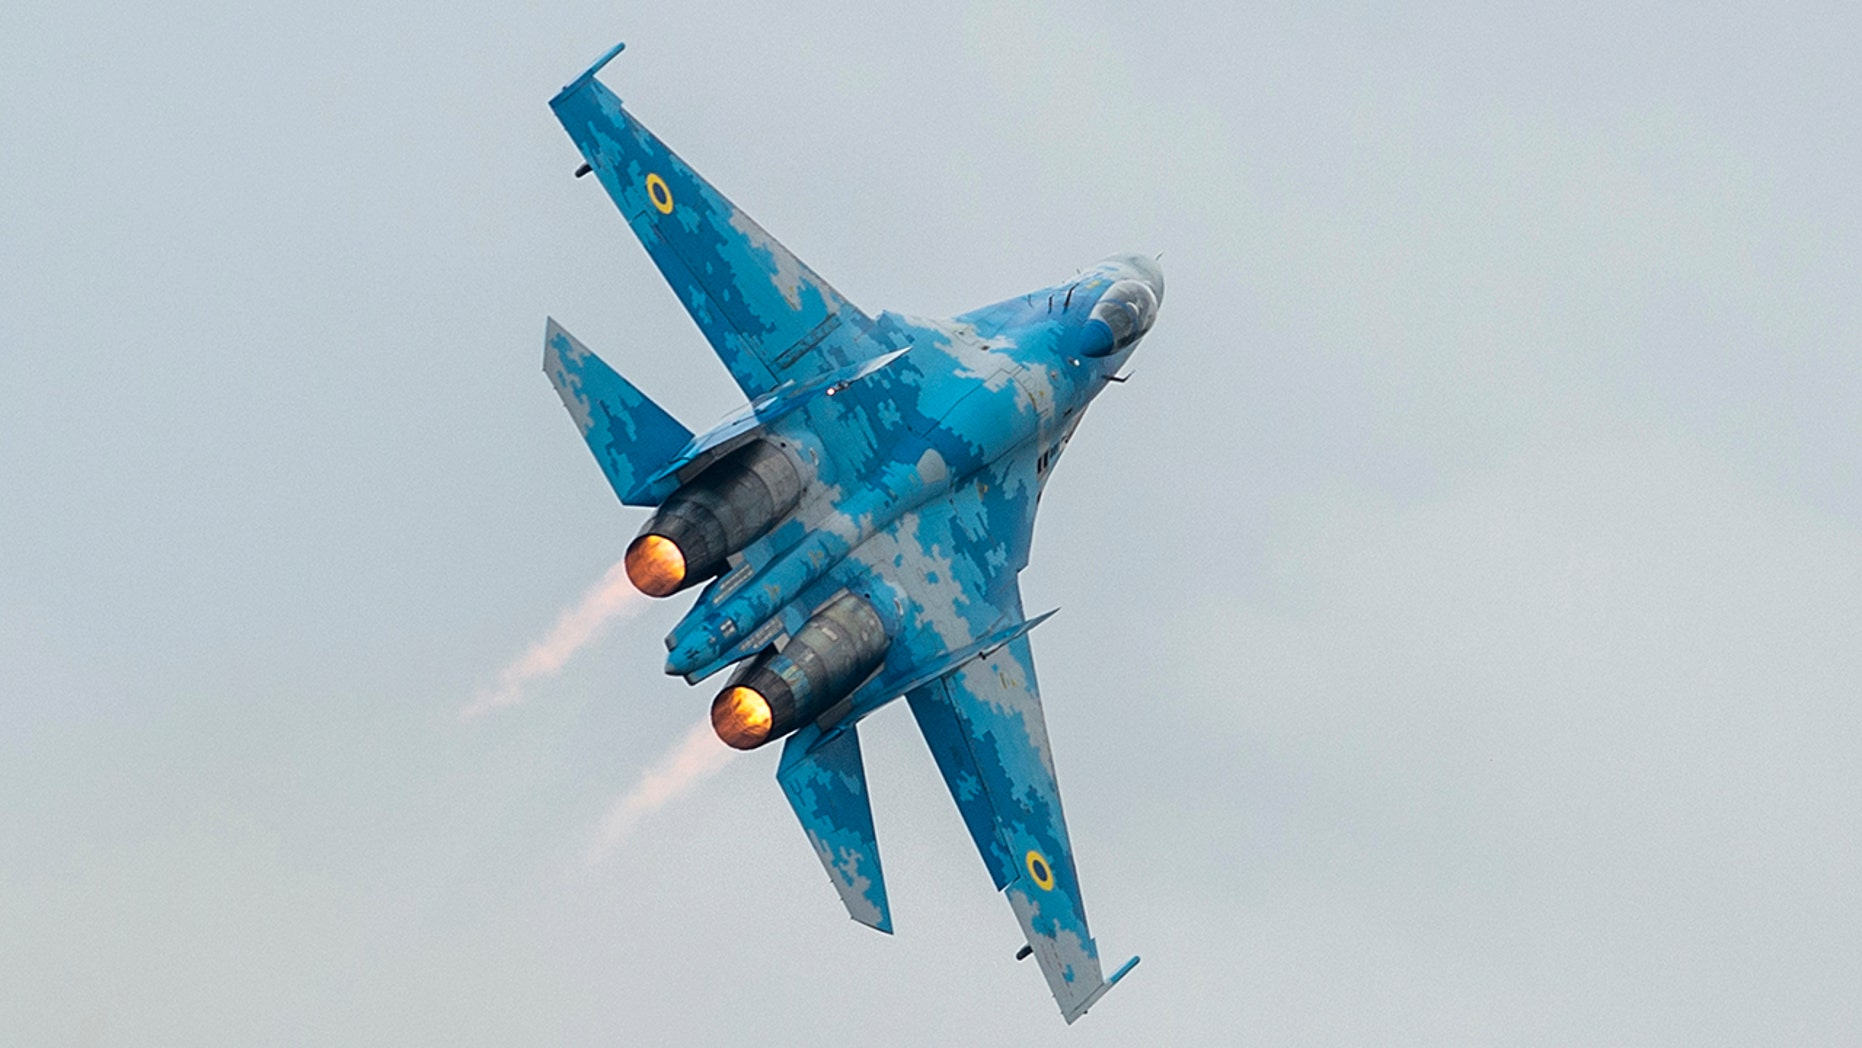 Air Force Pilot Killed In Ukraine Fighter Jet Crash